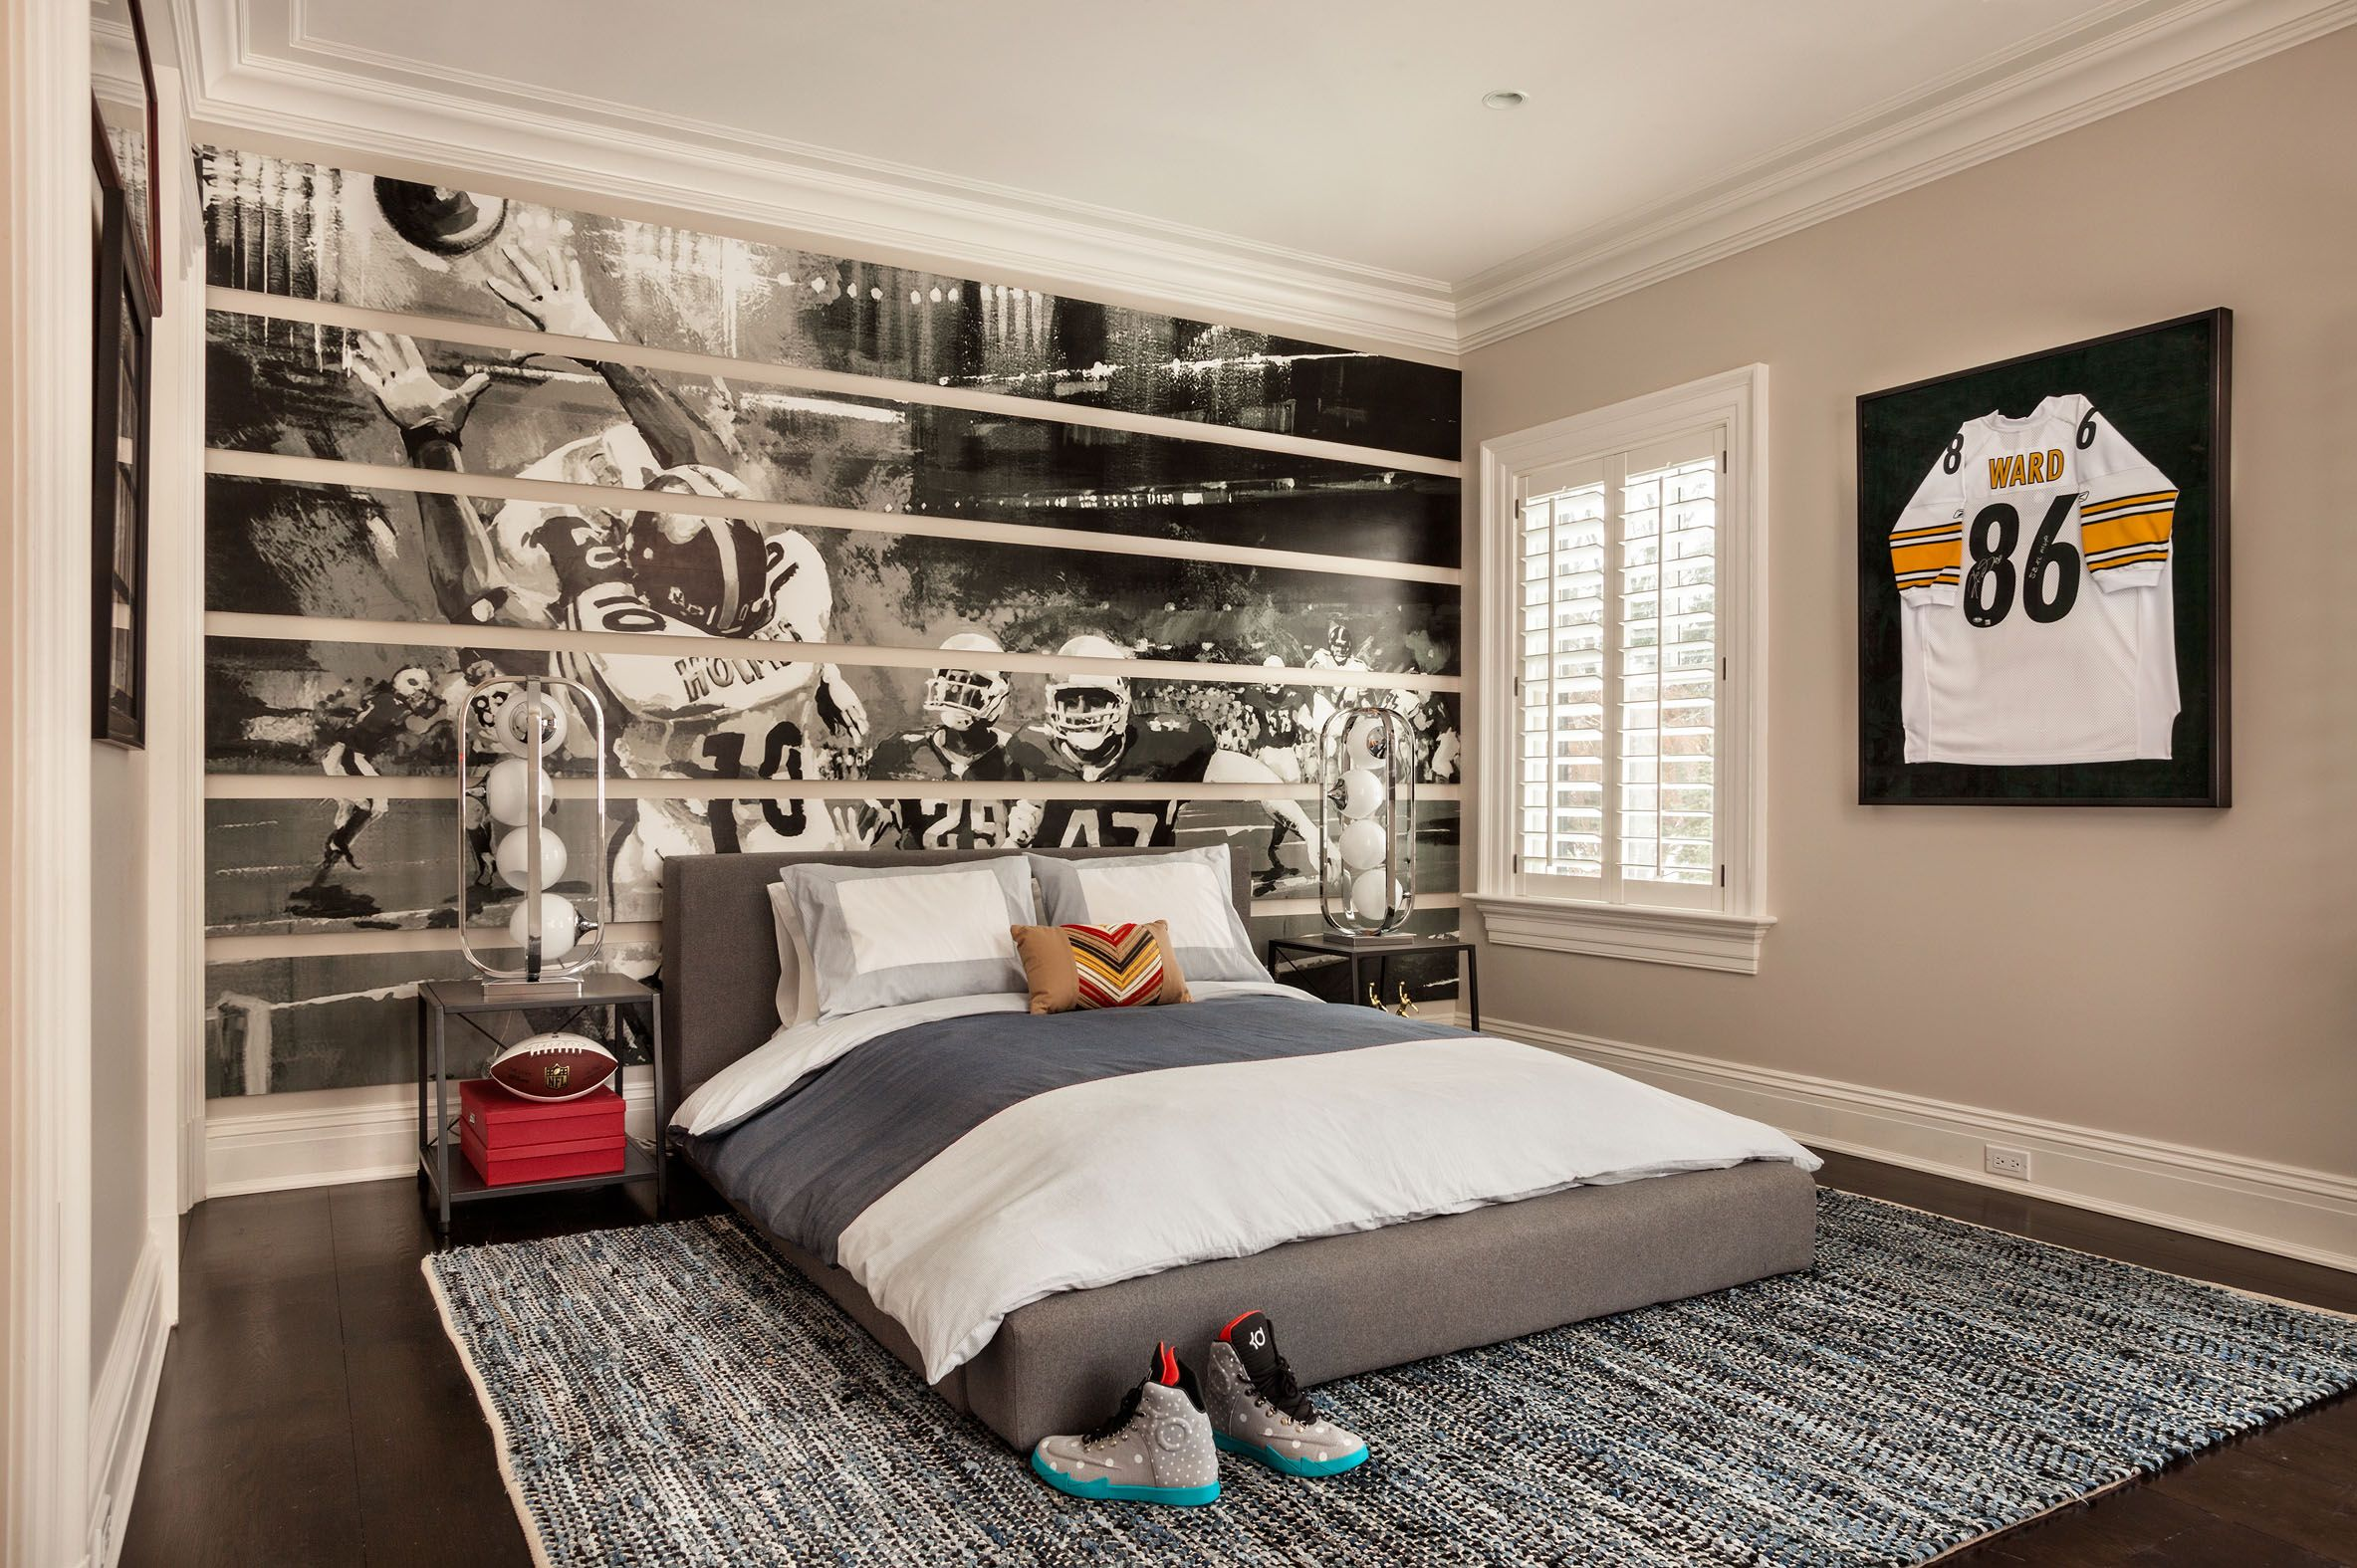 Elegant Luxury Bedroom Ideas For Furniture And Design 2017 Teen Boys Teen And Bedrooms